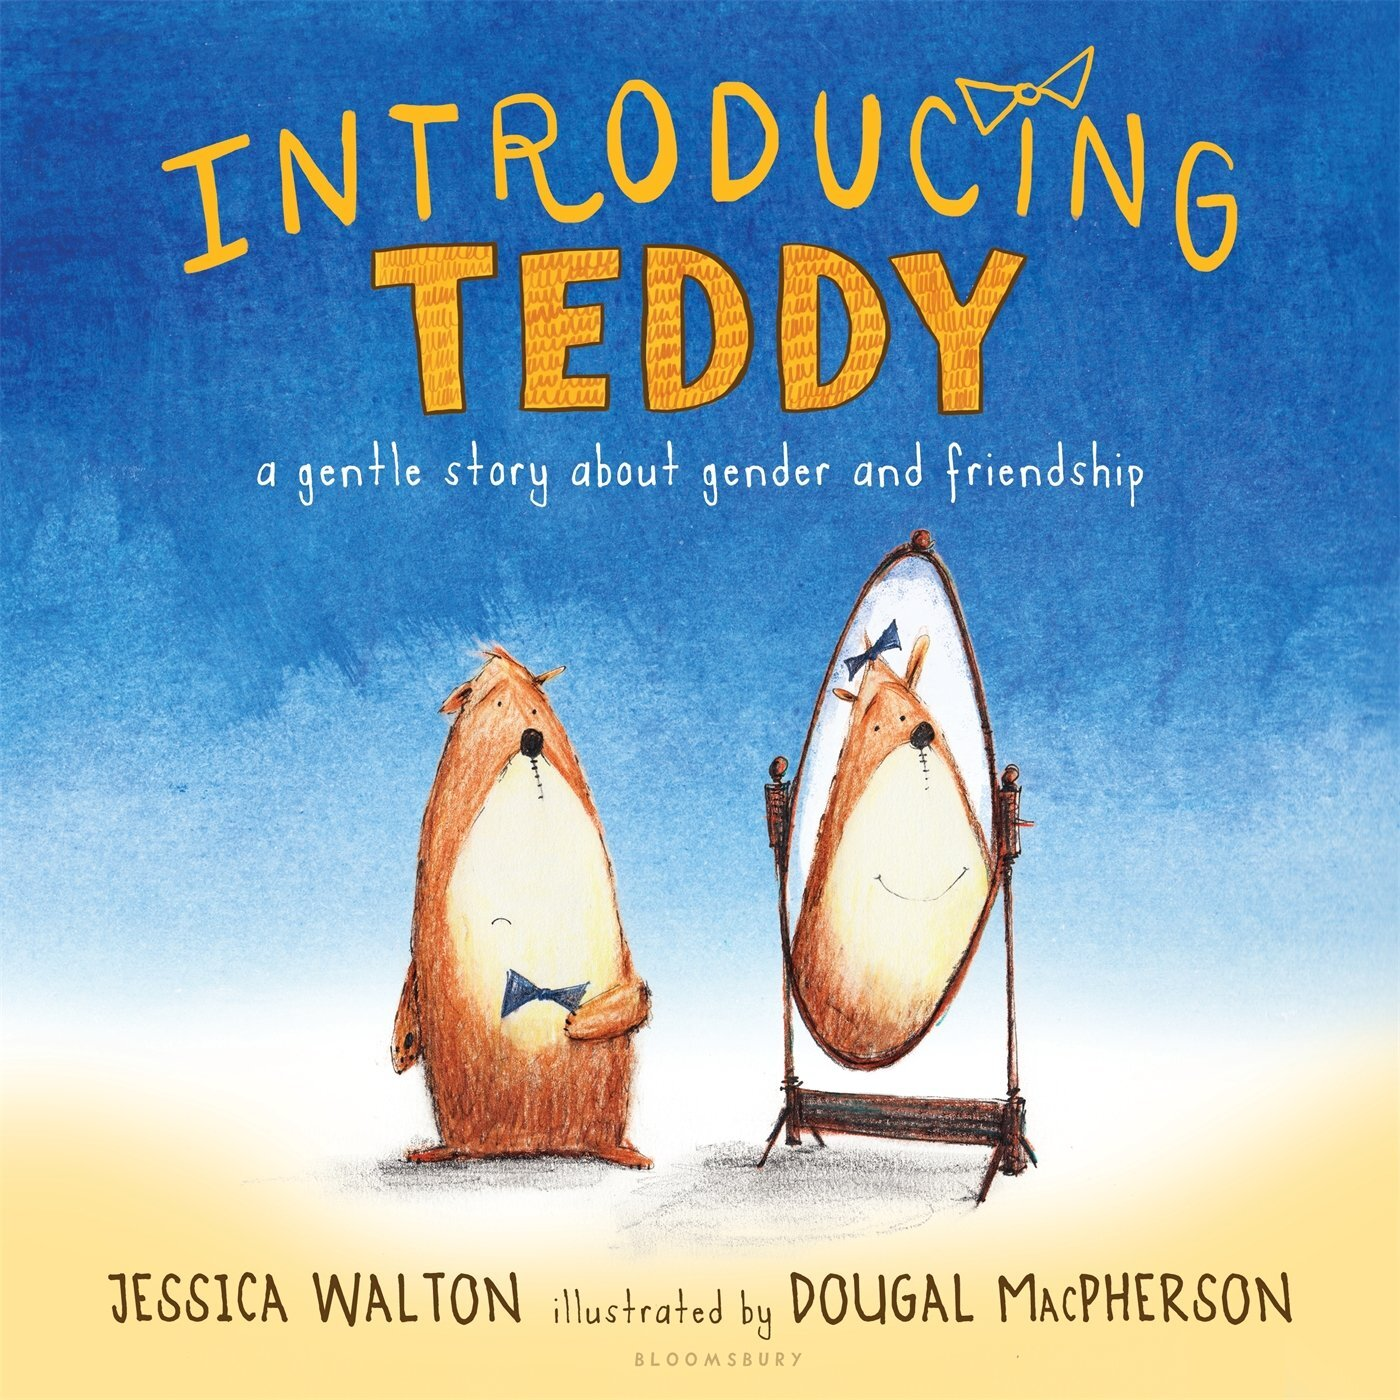 """Book cover of """"Introducing Teddy"""" written by Jessica Walton and illustrated by Dougal MacPherson featuring an illustration of a teddy bear with a frown looking at a feminine version of himself smiling in a mirror."""